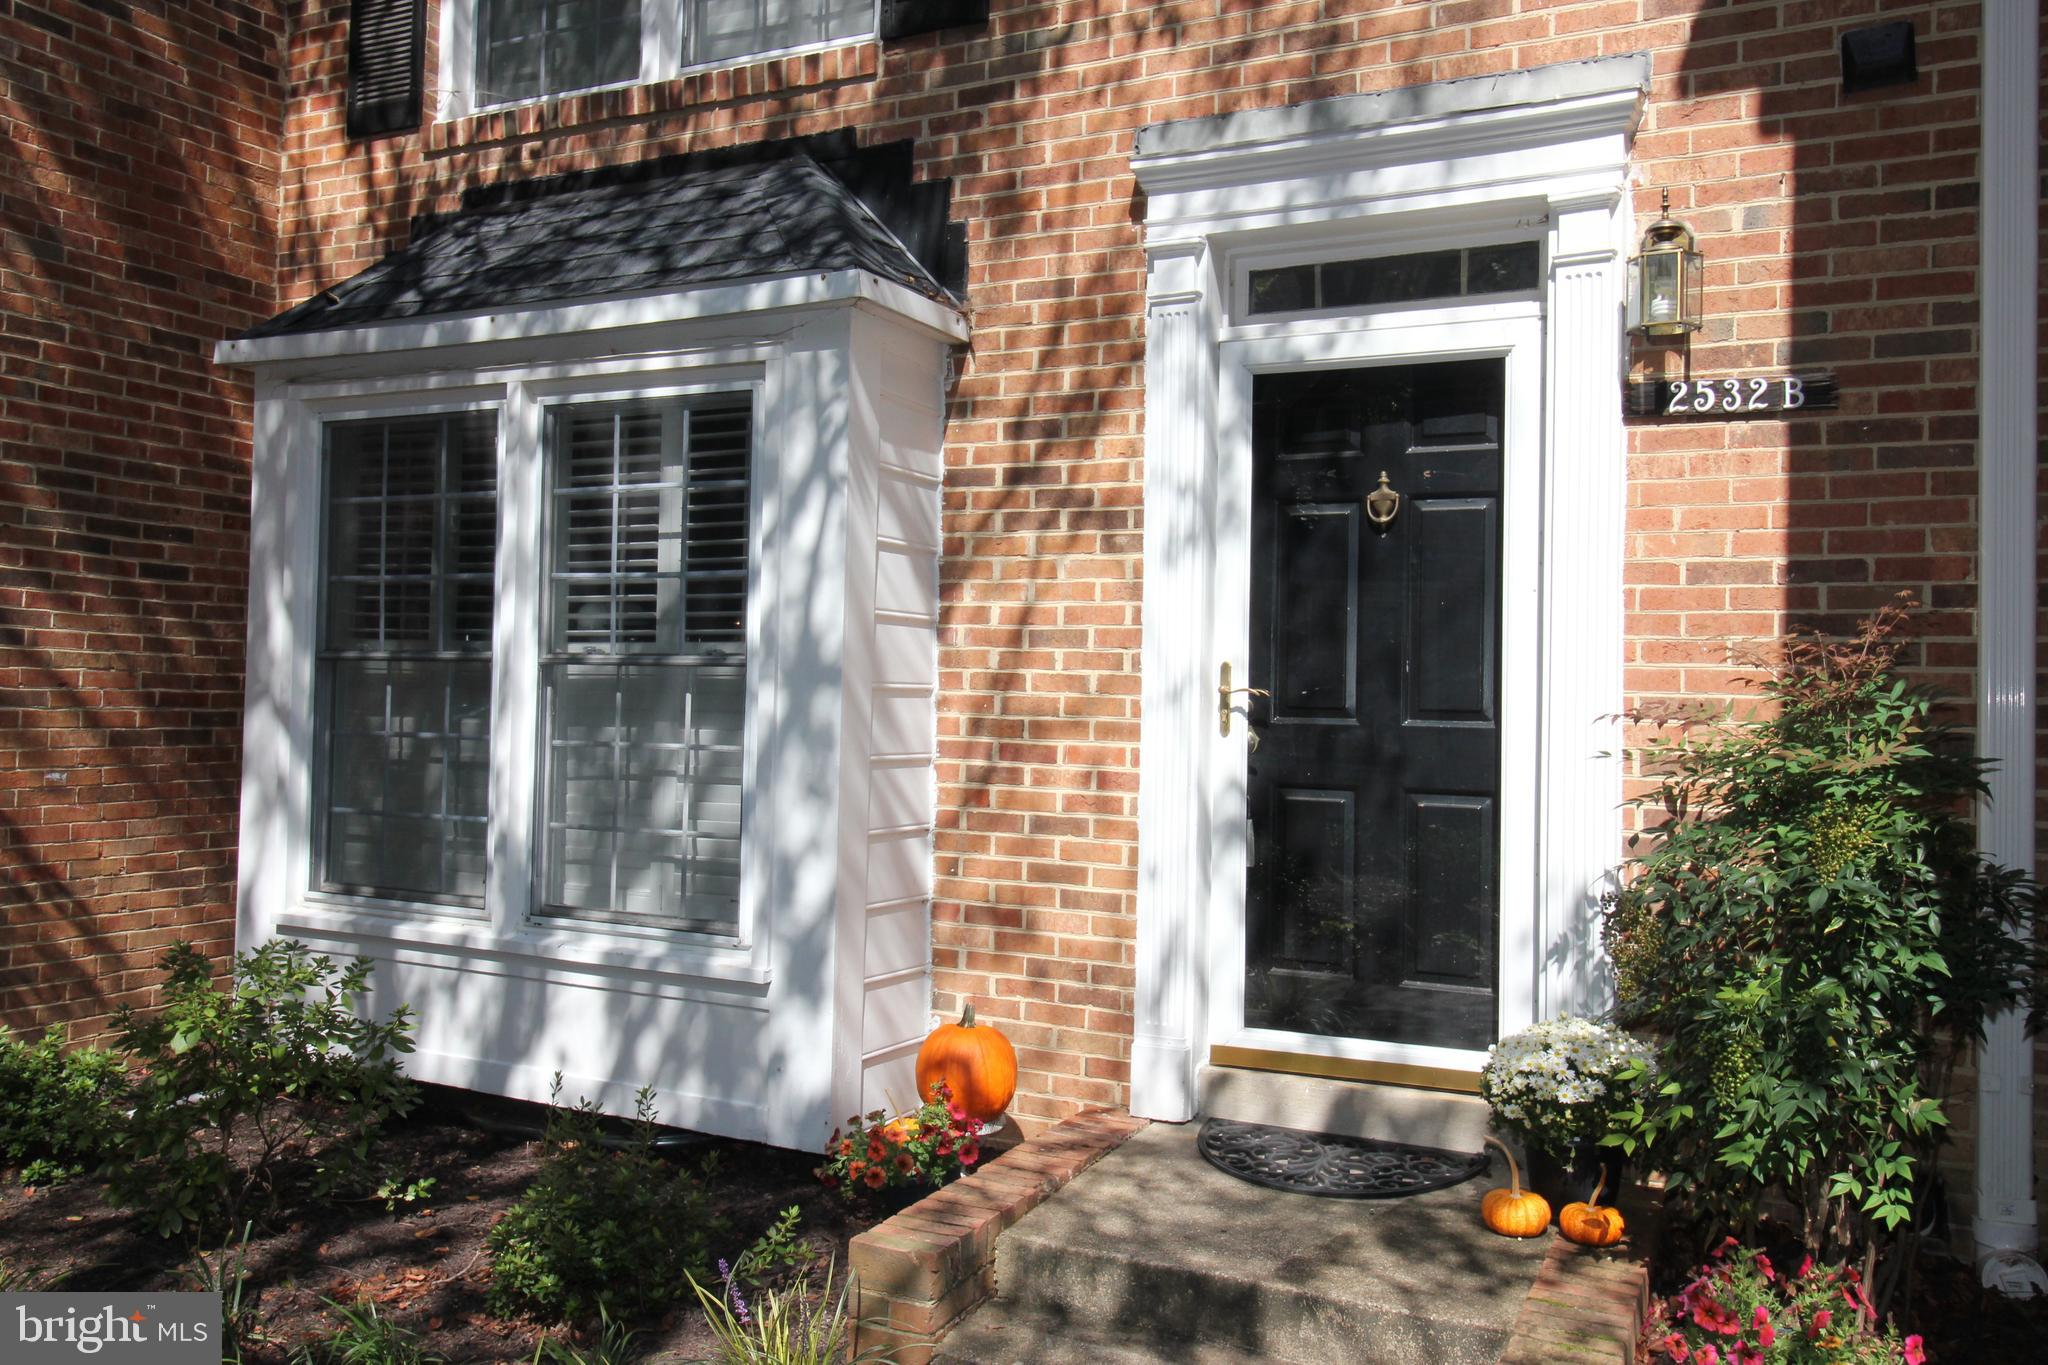 Offer deadline is Friday, September 25, 12:00 Noon.  Please see Bright Docs for helpful info for submitting.   Any offer must have lender pre-qual or proof of funds included in package; please submit entire offer package in one PDF.  Welcome to a fabulous 4 Bedroom/3.5 Bathroom Windgate II Town Home which has been beautifully updated with top-of-the-line finishes on all three of its spacious levels.  This  lovely home offers wonderful spaces for living, working, learning and gathering under one roof.  On the main level, you will find a spectacular chef's kitchen with large granite prep center, bar and seating area where you can  prepare and share fabulous meals together at home.  A light-filled family room adjacent to airy kitchen provides an open, spacious setting for gathering and relaxing comfortably.  French doors lead to beautiful enclosed patio offering  room for private outdoor living, relaxing  and entertaining. The sunny upper level has an en-suite Master Suite featuring a brand new luxury bath, two additional large bedrooms and a gorgeous marble hall bath with tub.   The lower level has been updated with a huge new granite bathroom and a large egress window so the main room can be used as an in-law suite with legal bedroom and an office. Additional amenities include large storage and hanging closets for all of your office supplies & life gear.  Beautiful hardwood floors were added on upper level and staircases.  All of these thoughtful details make living, working, learning here under one roof convenient and enjoyable. Windgate II is a quiet, pet-friendly community of brick townhomes, with a walkabilty score of 92.  It is only a 10 minute walk to Shirlington Village and a 15 minute drive to downtown DC.   Community amenities include pool, tennis courts, gazebo and multiple walking, biking  & workout trails.   You will love this beautiful home and community!